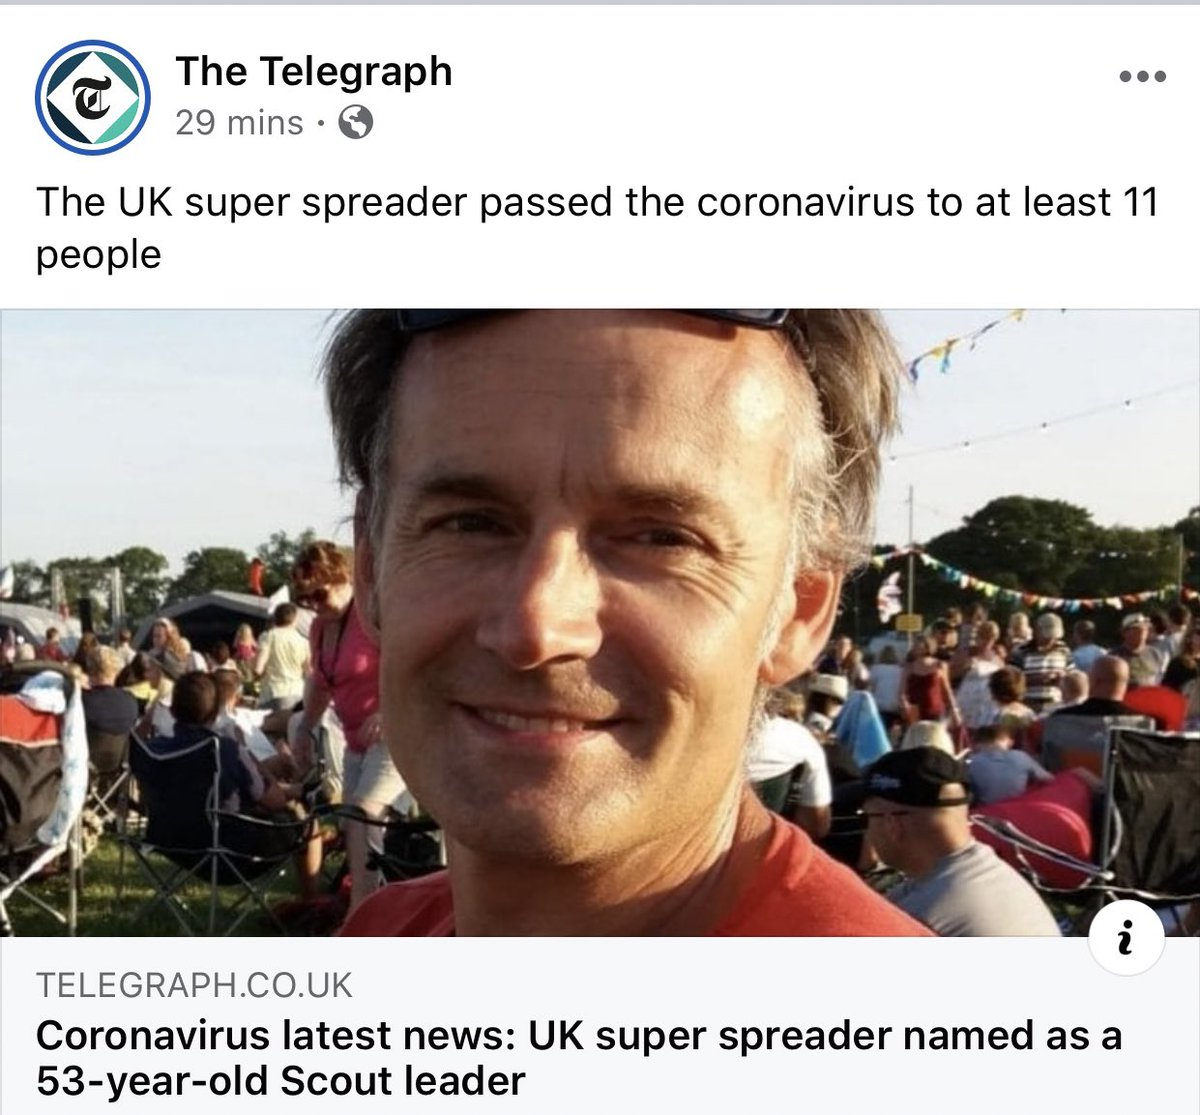 This headline on The Telegraph is so misleading. They almost make it sound like he's spreading coronavirus on purpose.